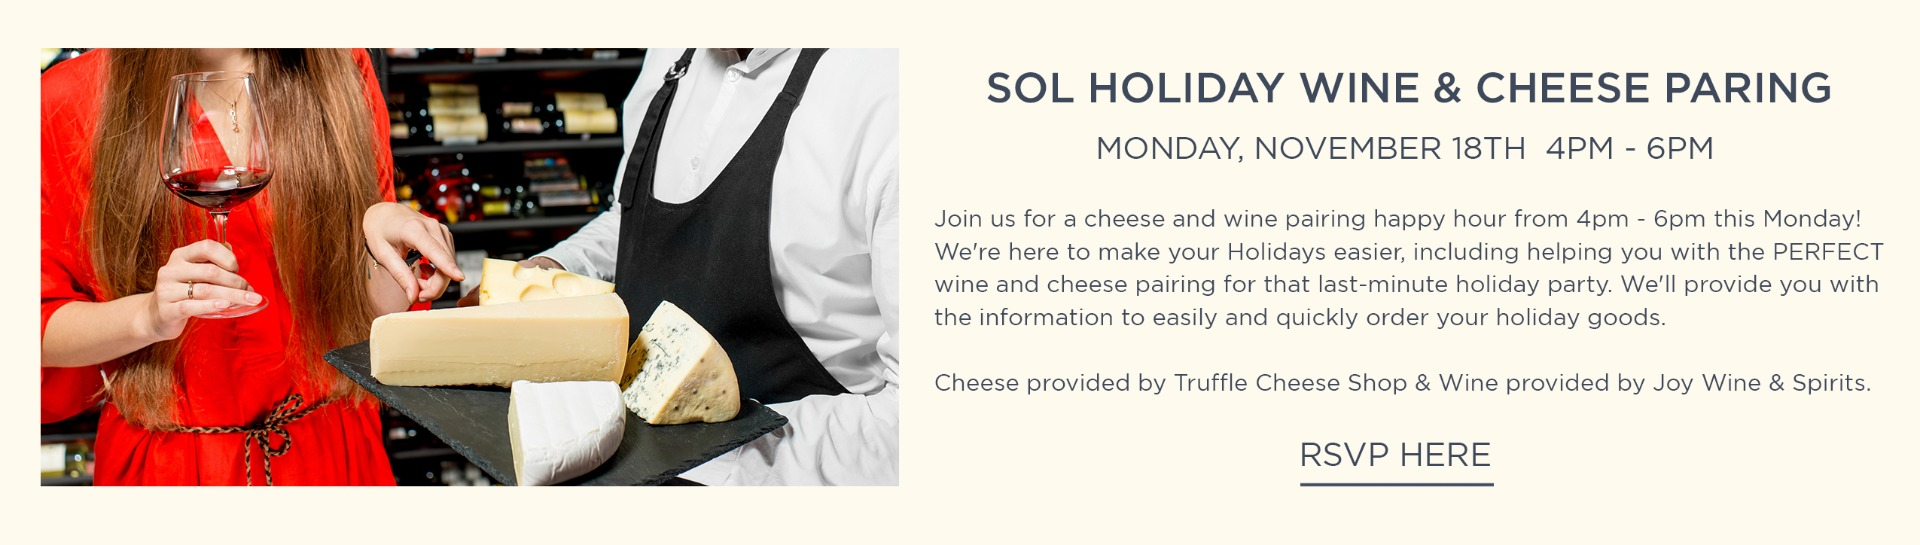 SOL Holiday Wine and Cheese Pairing